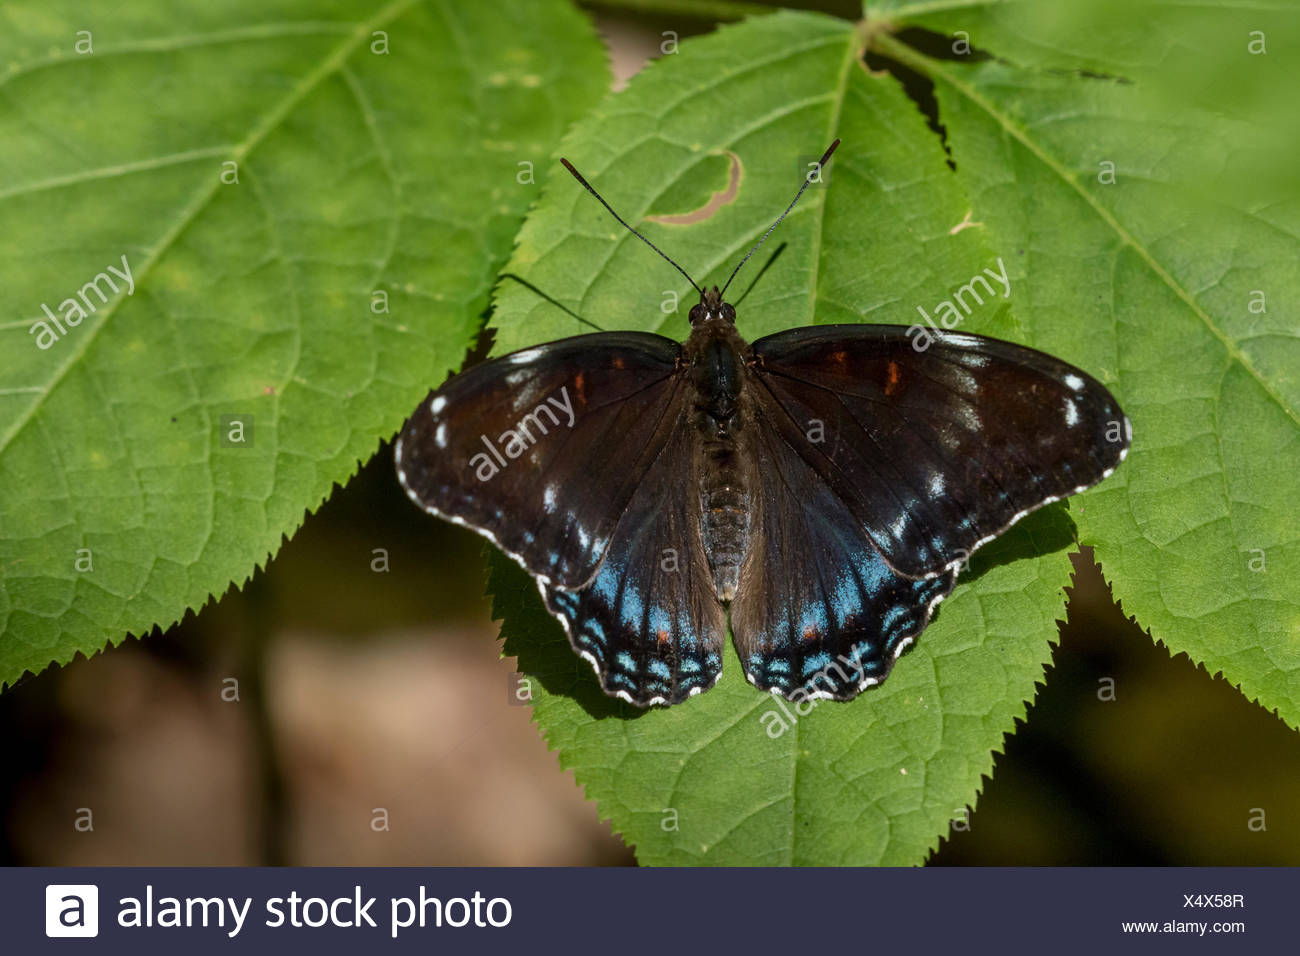 Limenitis arthemis butterfly hybrid of subspecies Red-spotted Purple (Limenitis arthemis astyanax) and White Admiral (Limenitis arthemis arthemis) in Awenda Provincial Park, Ontario, Canada - Stock Image